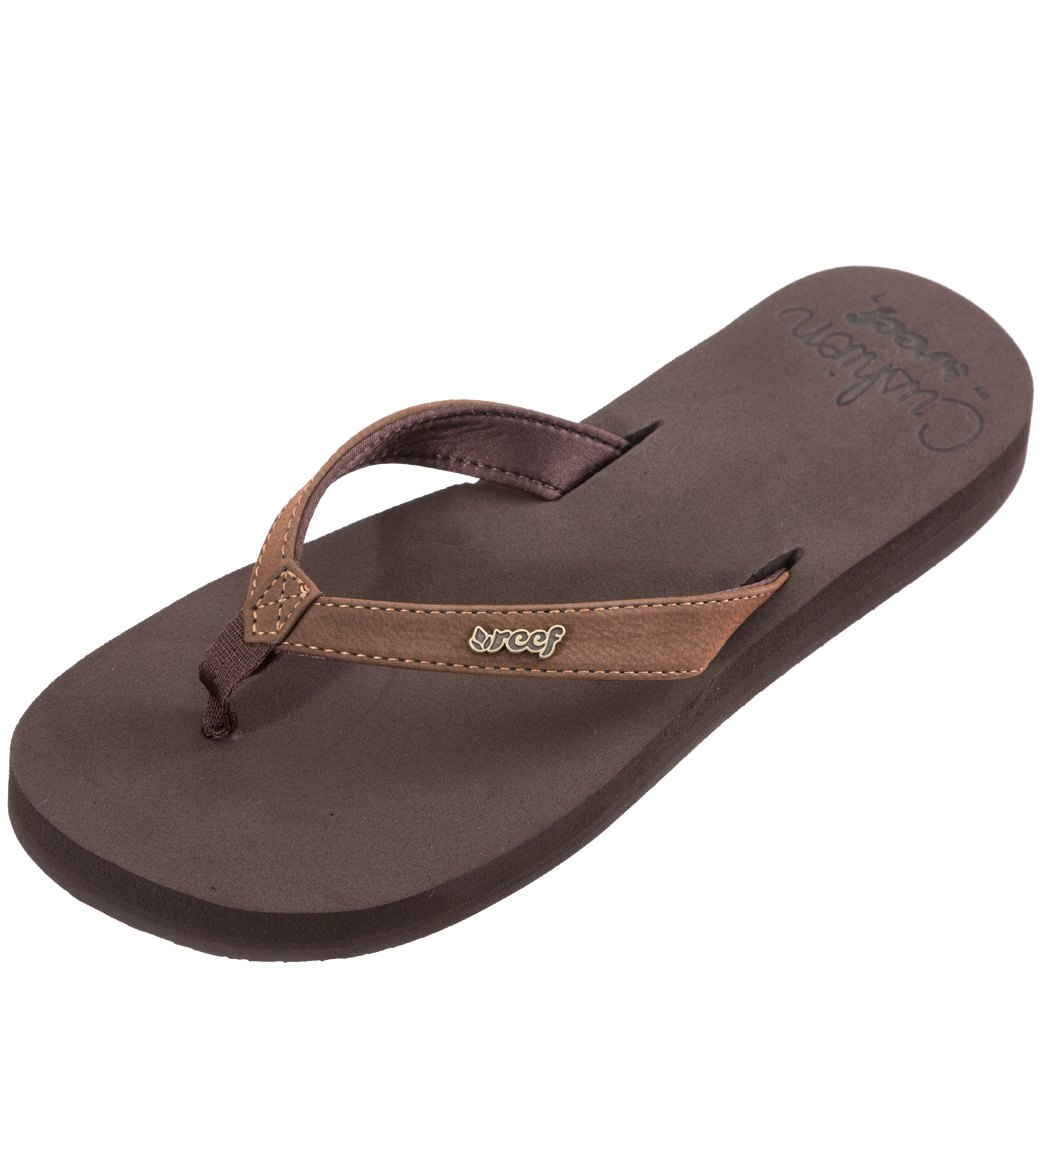 156204cf602598 Reef Women s Cushion Luna Flip Flop at SwimOutlet.com